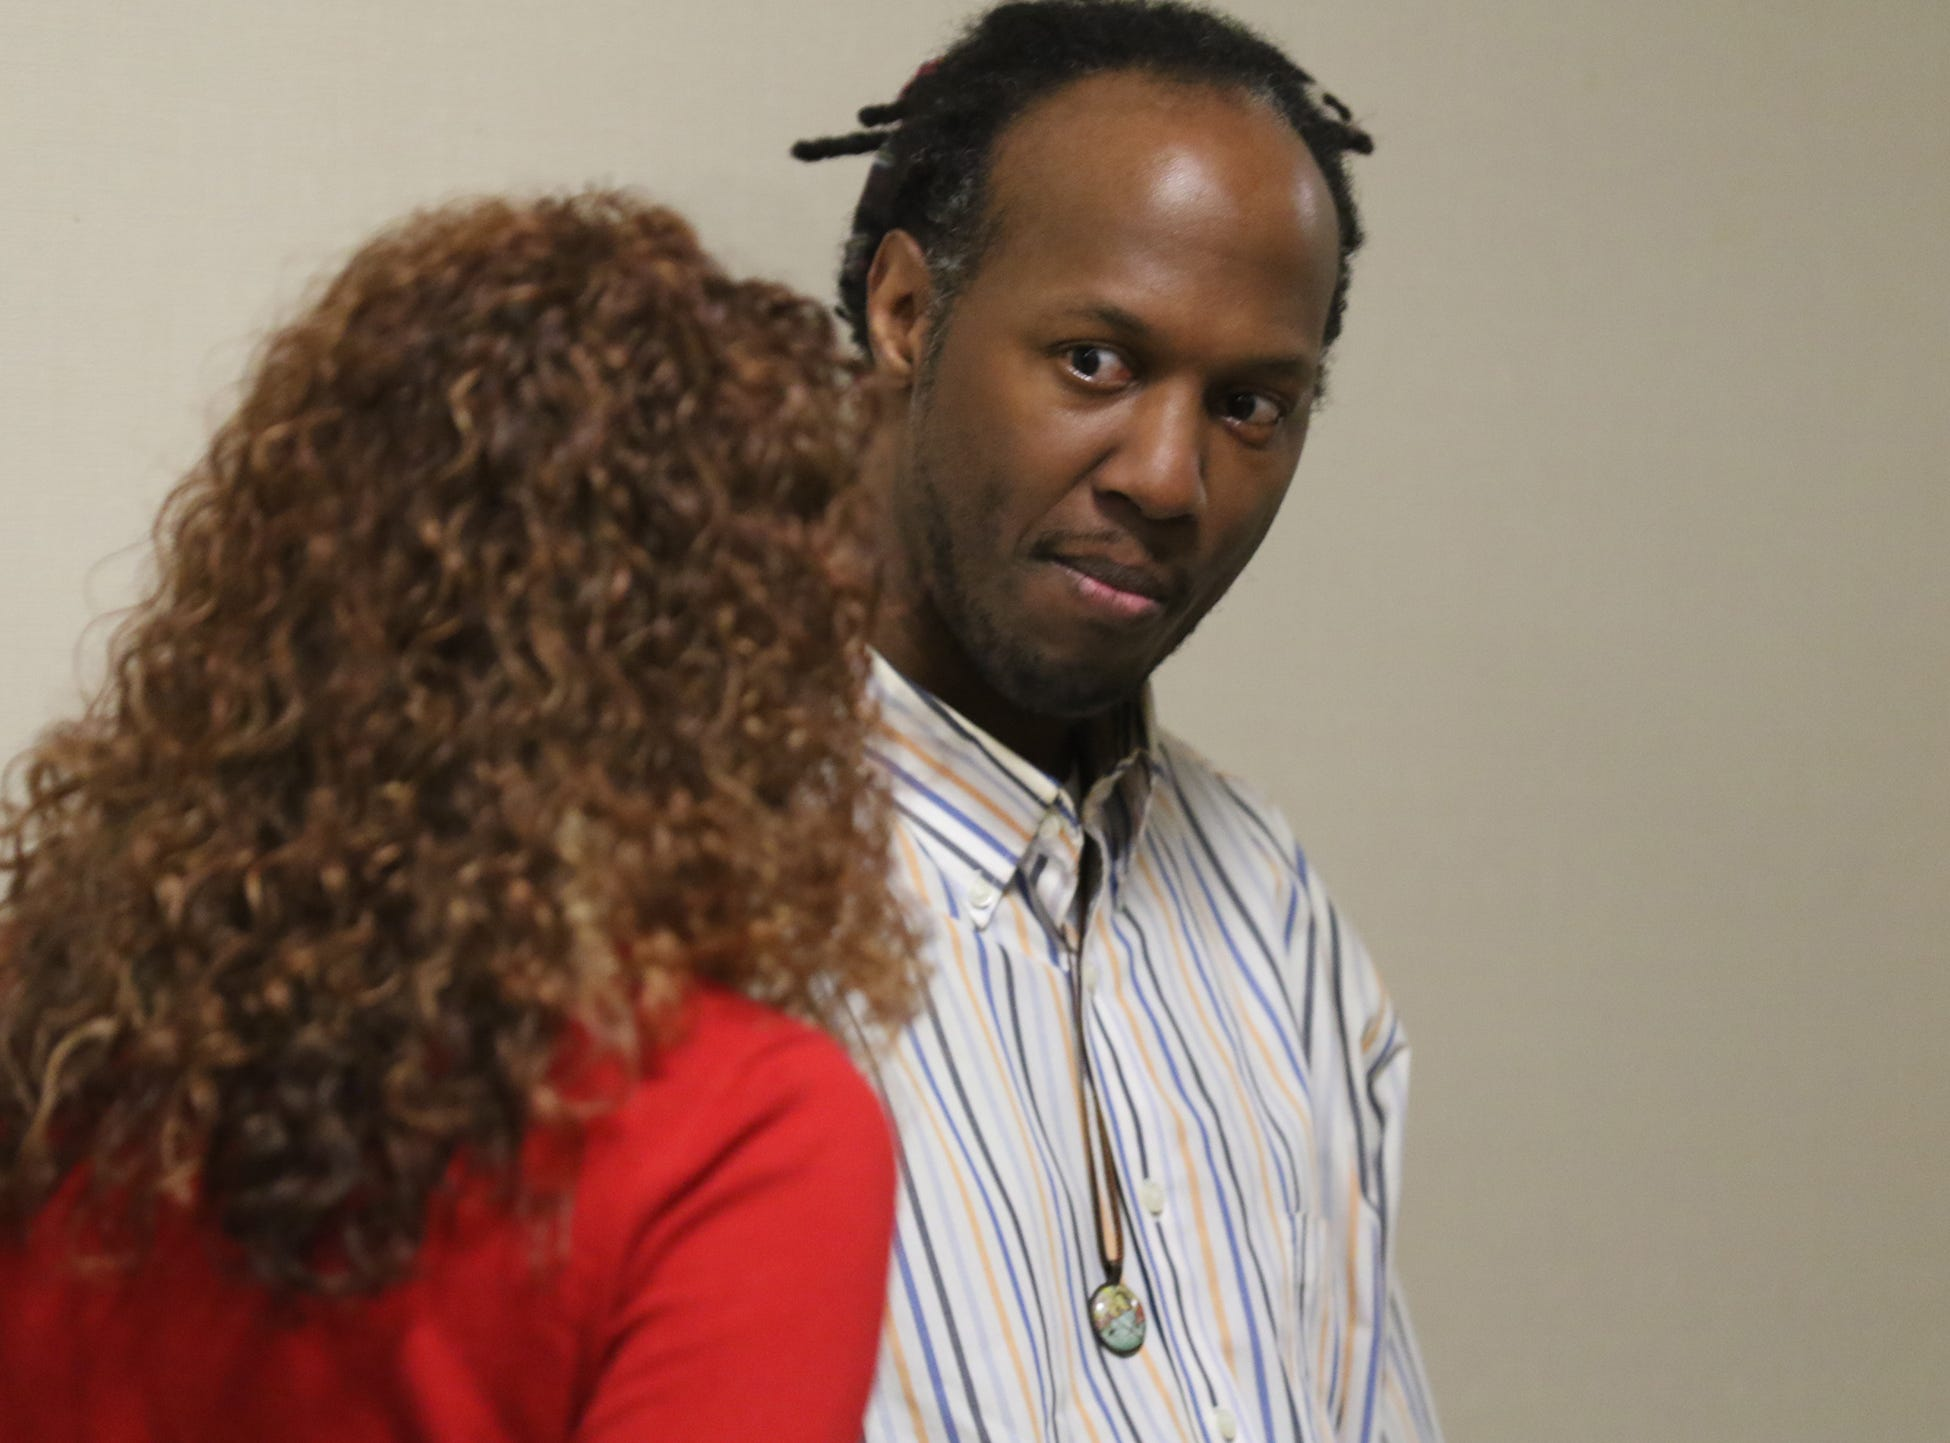 Christopher Pate waits outside the courtroom to be called in.